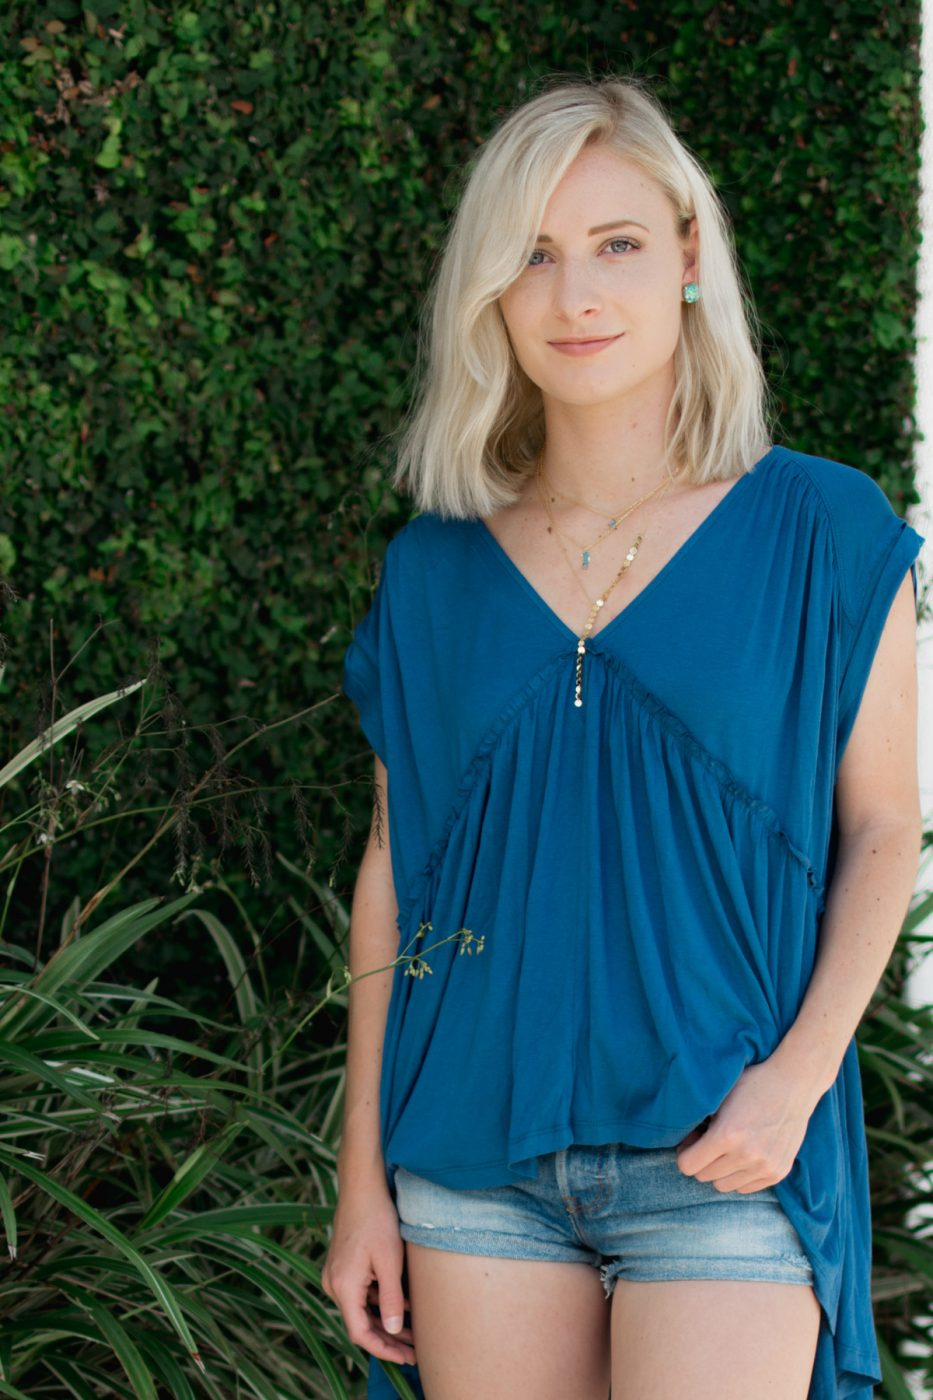 Sweet Teal's Jenny wearing Motif jewelry and GroopDealz top